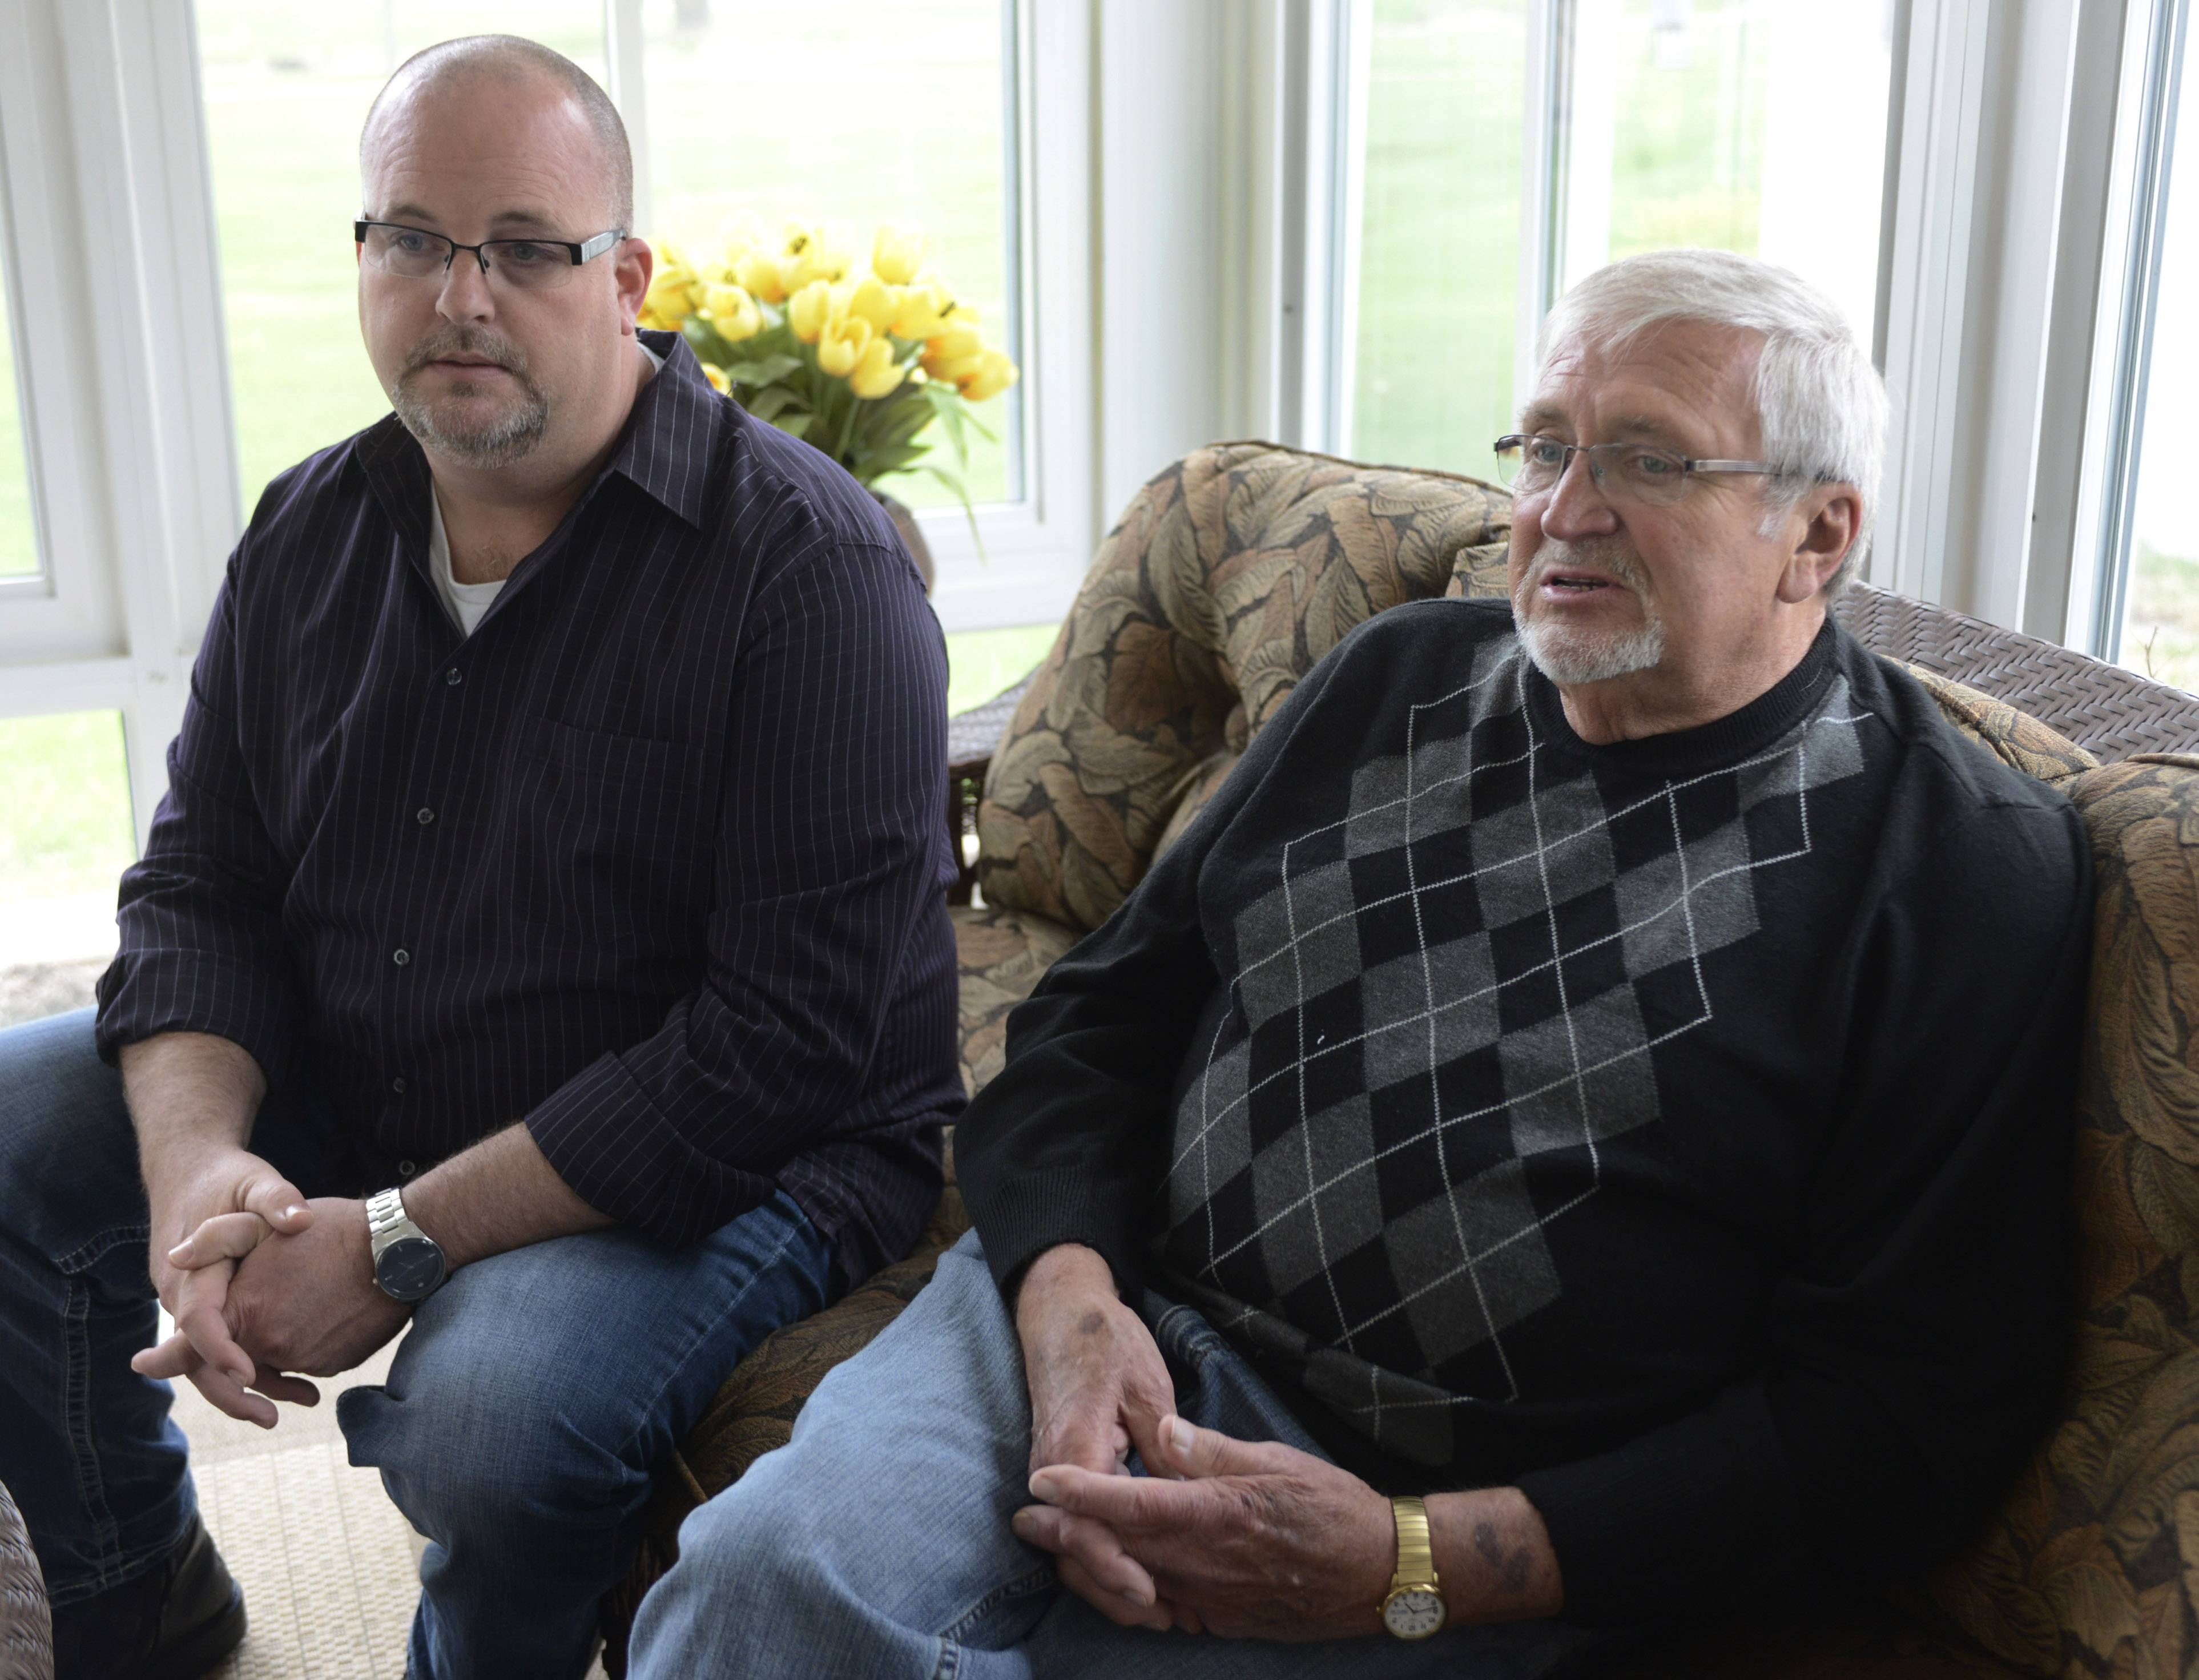 Seated with his son, Steve, Schaumburg Village Trustee Frank Kozak, right, and his wife, Char, recall how they narrowly survived a tornado that killed 29 people and caused an estimated $2 billion damage in the Oklahoma City area last year.